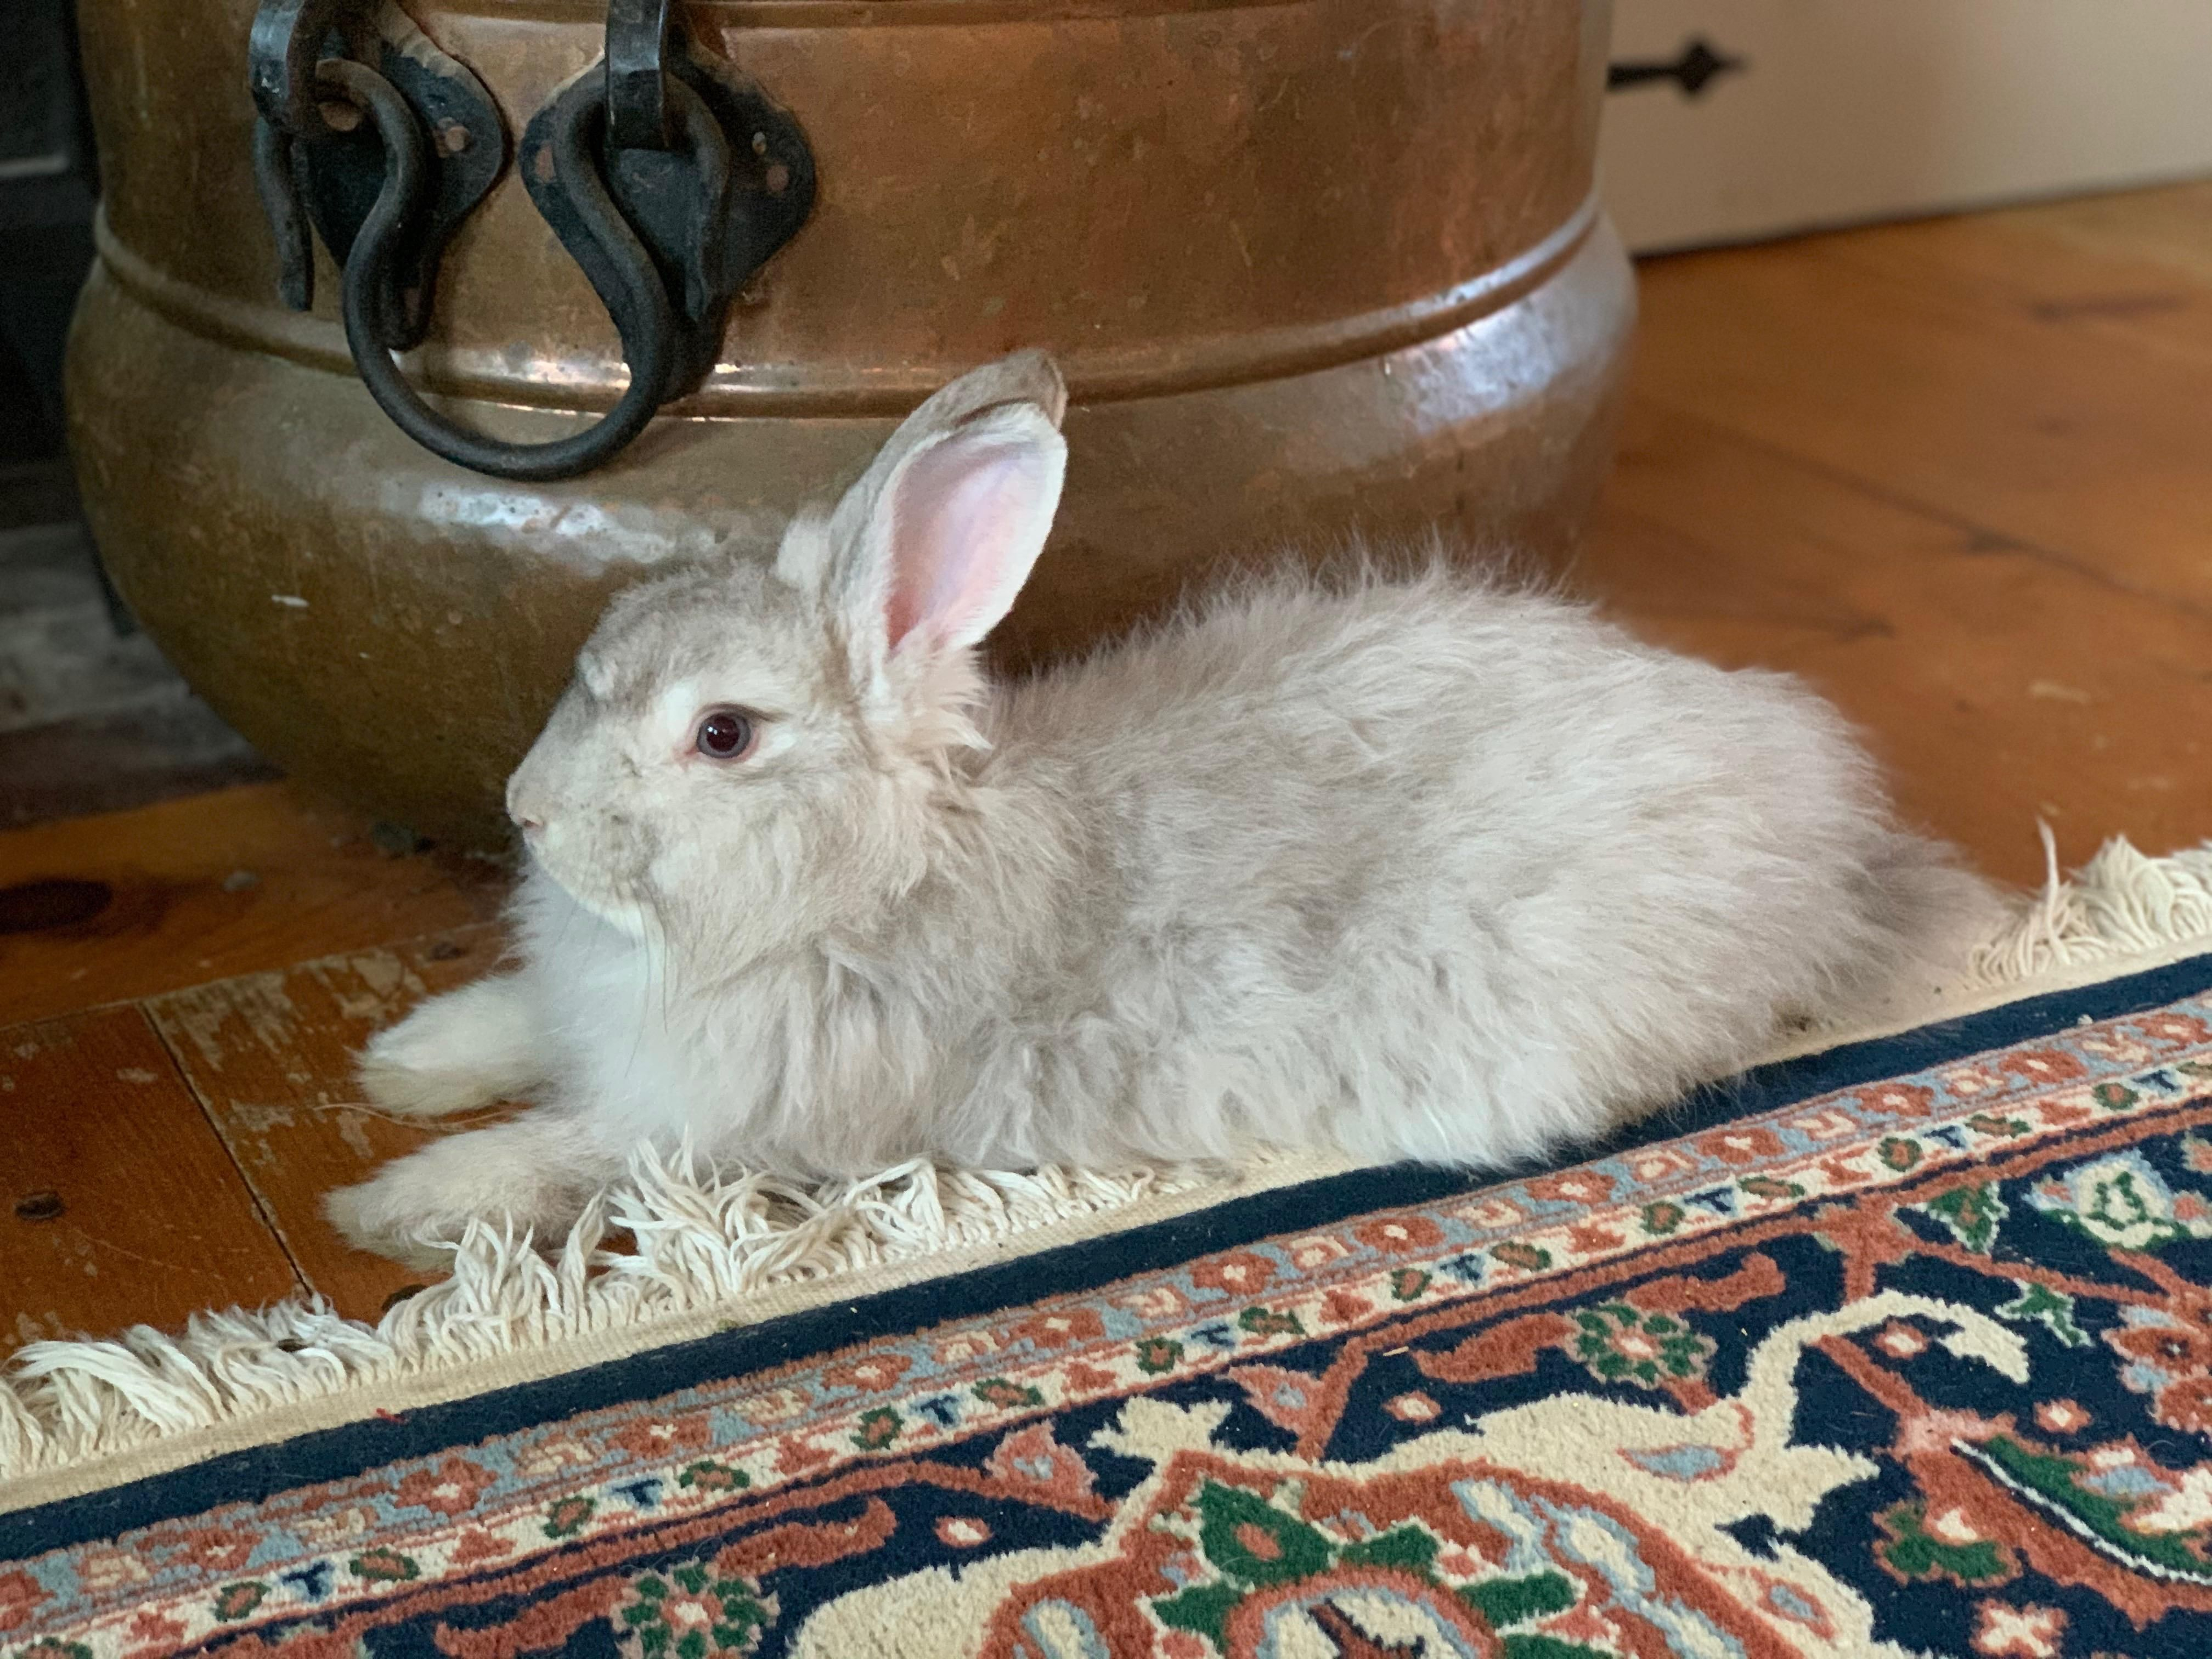 Meet duck the rabbit -Rabbit Bunny tips care and ideas! #rabbitlovers